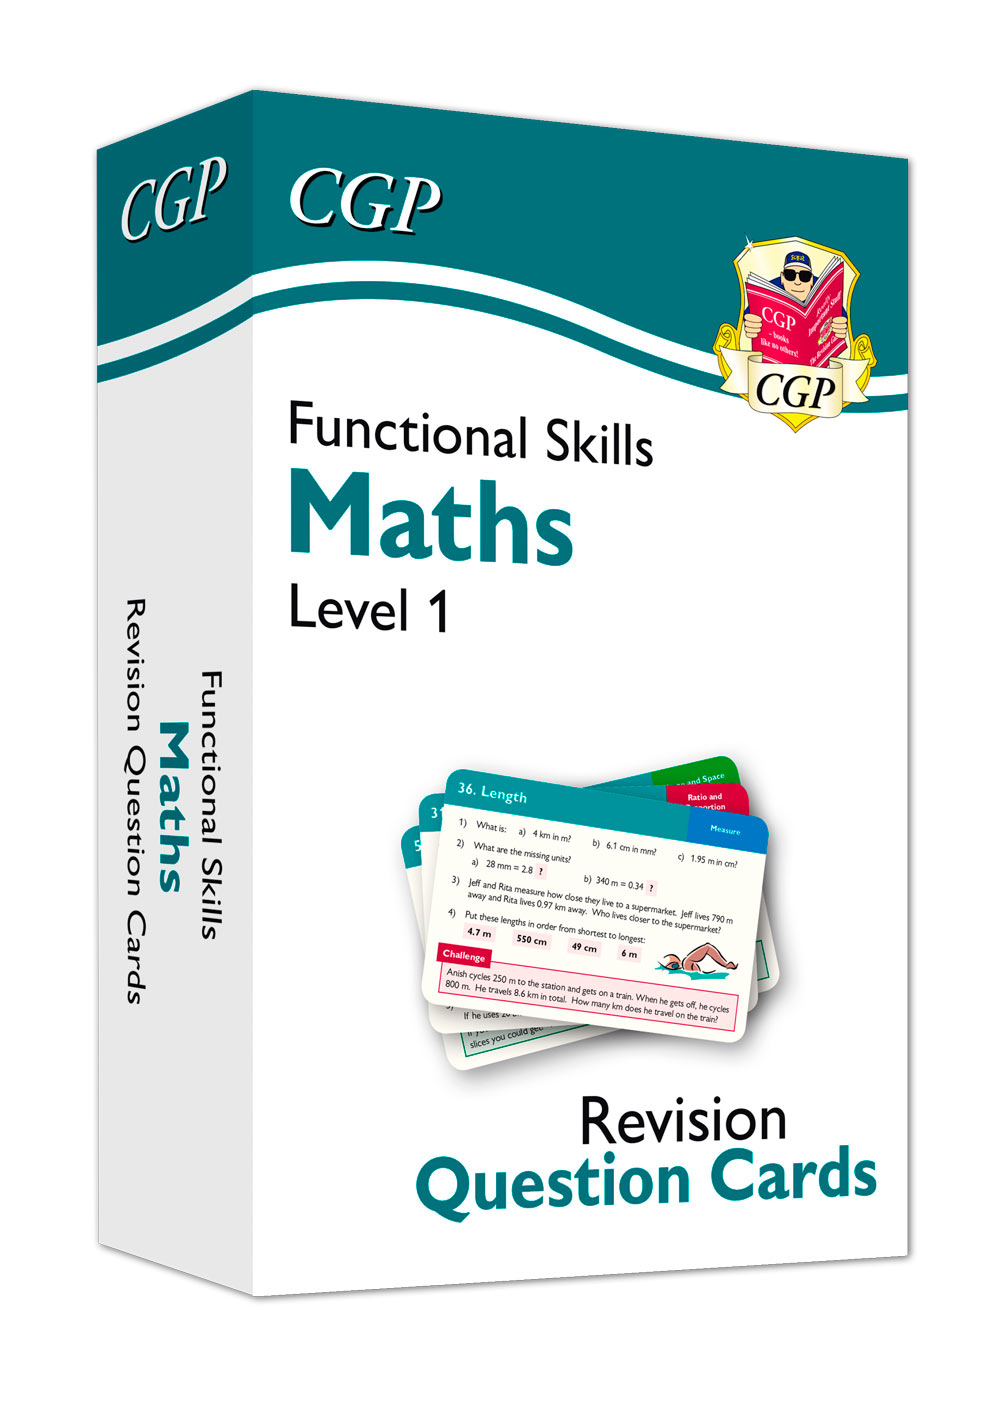 M1NFA1 - New Functional Skills Maths Revision Question Cards - Level 1